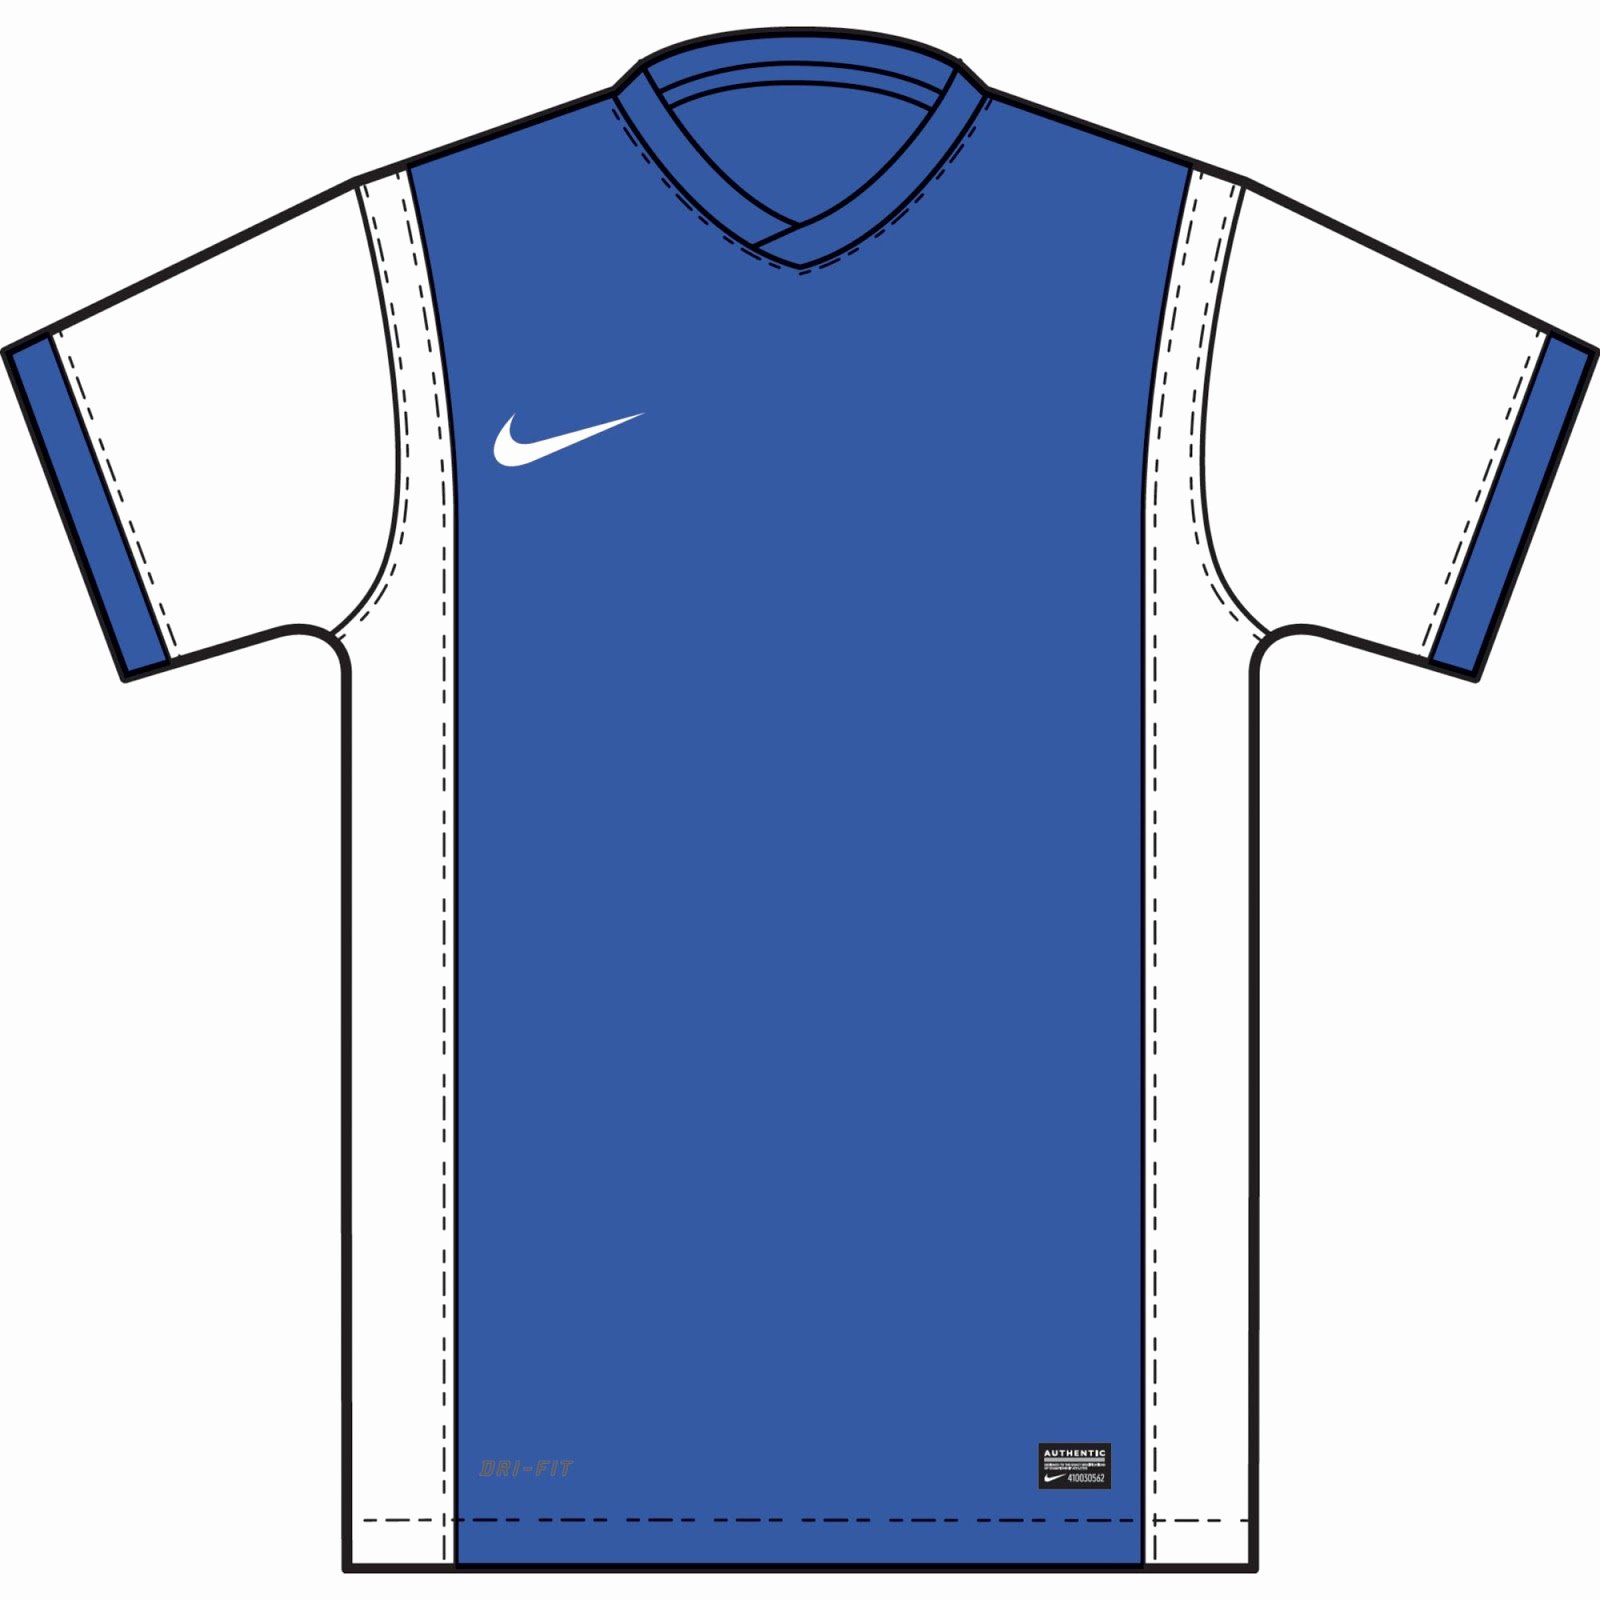 Nike Football Uniform Template Elegant Nike 14 15 Teamwear Trikots Nike 2014 2015 Templates